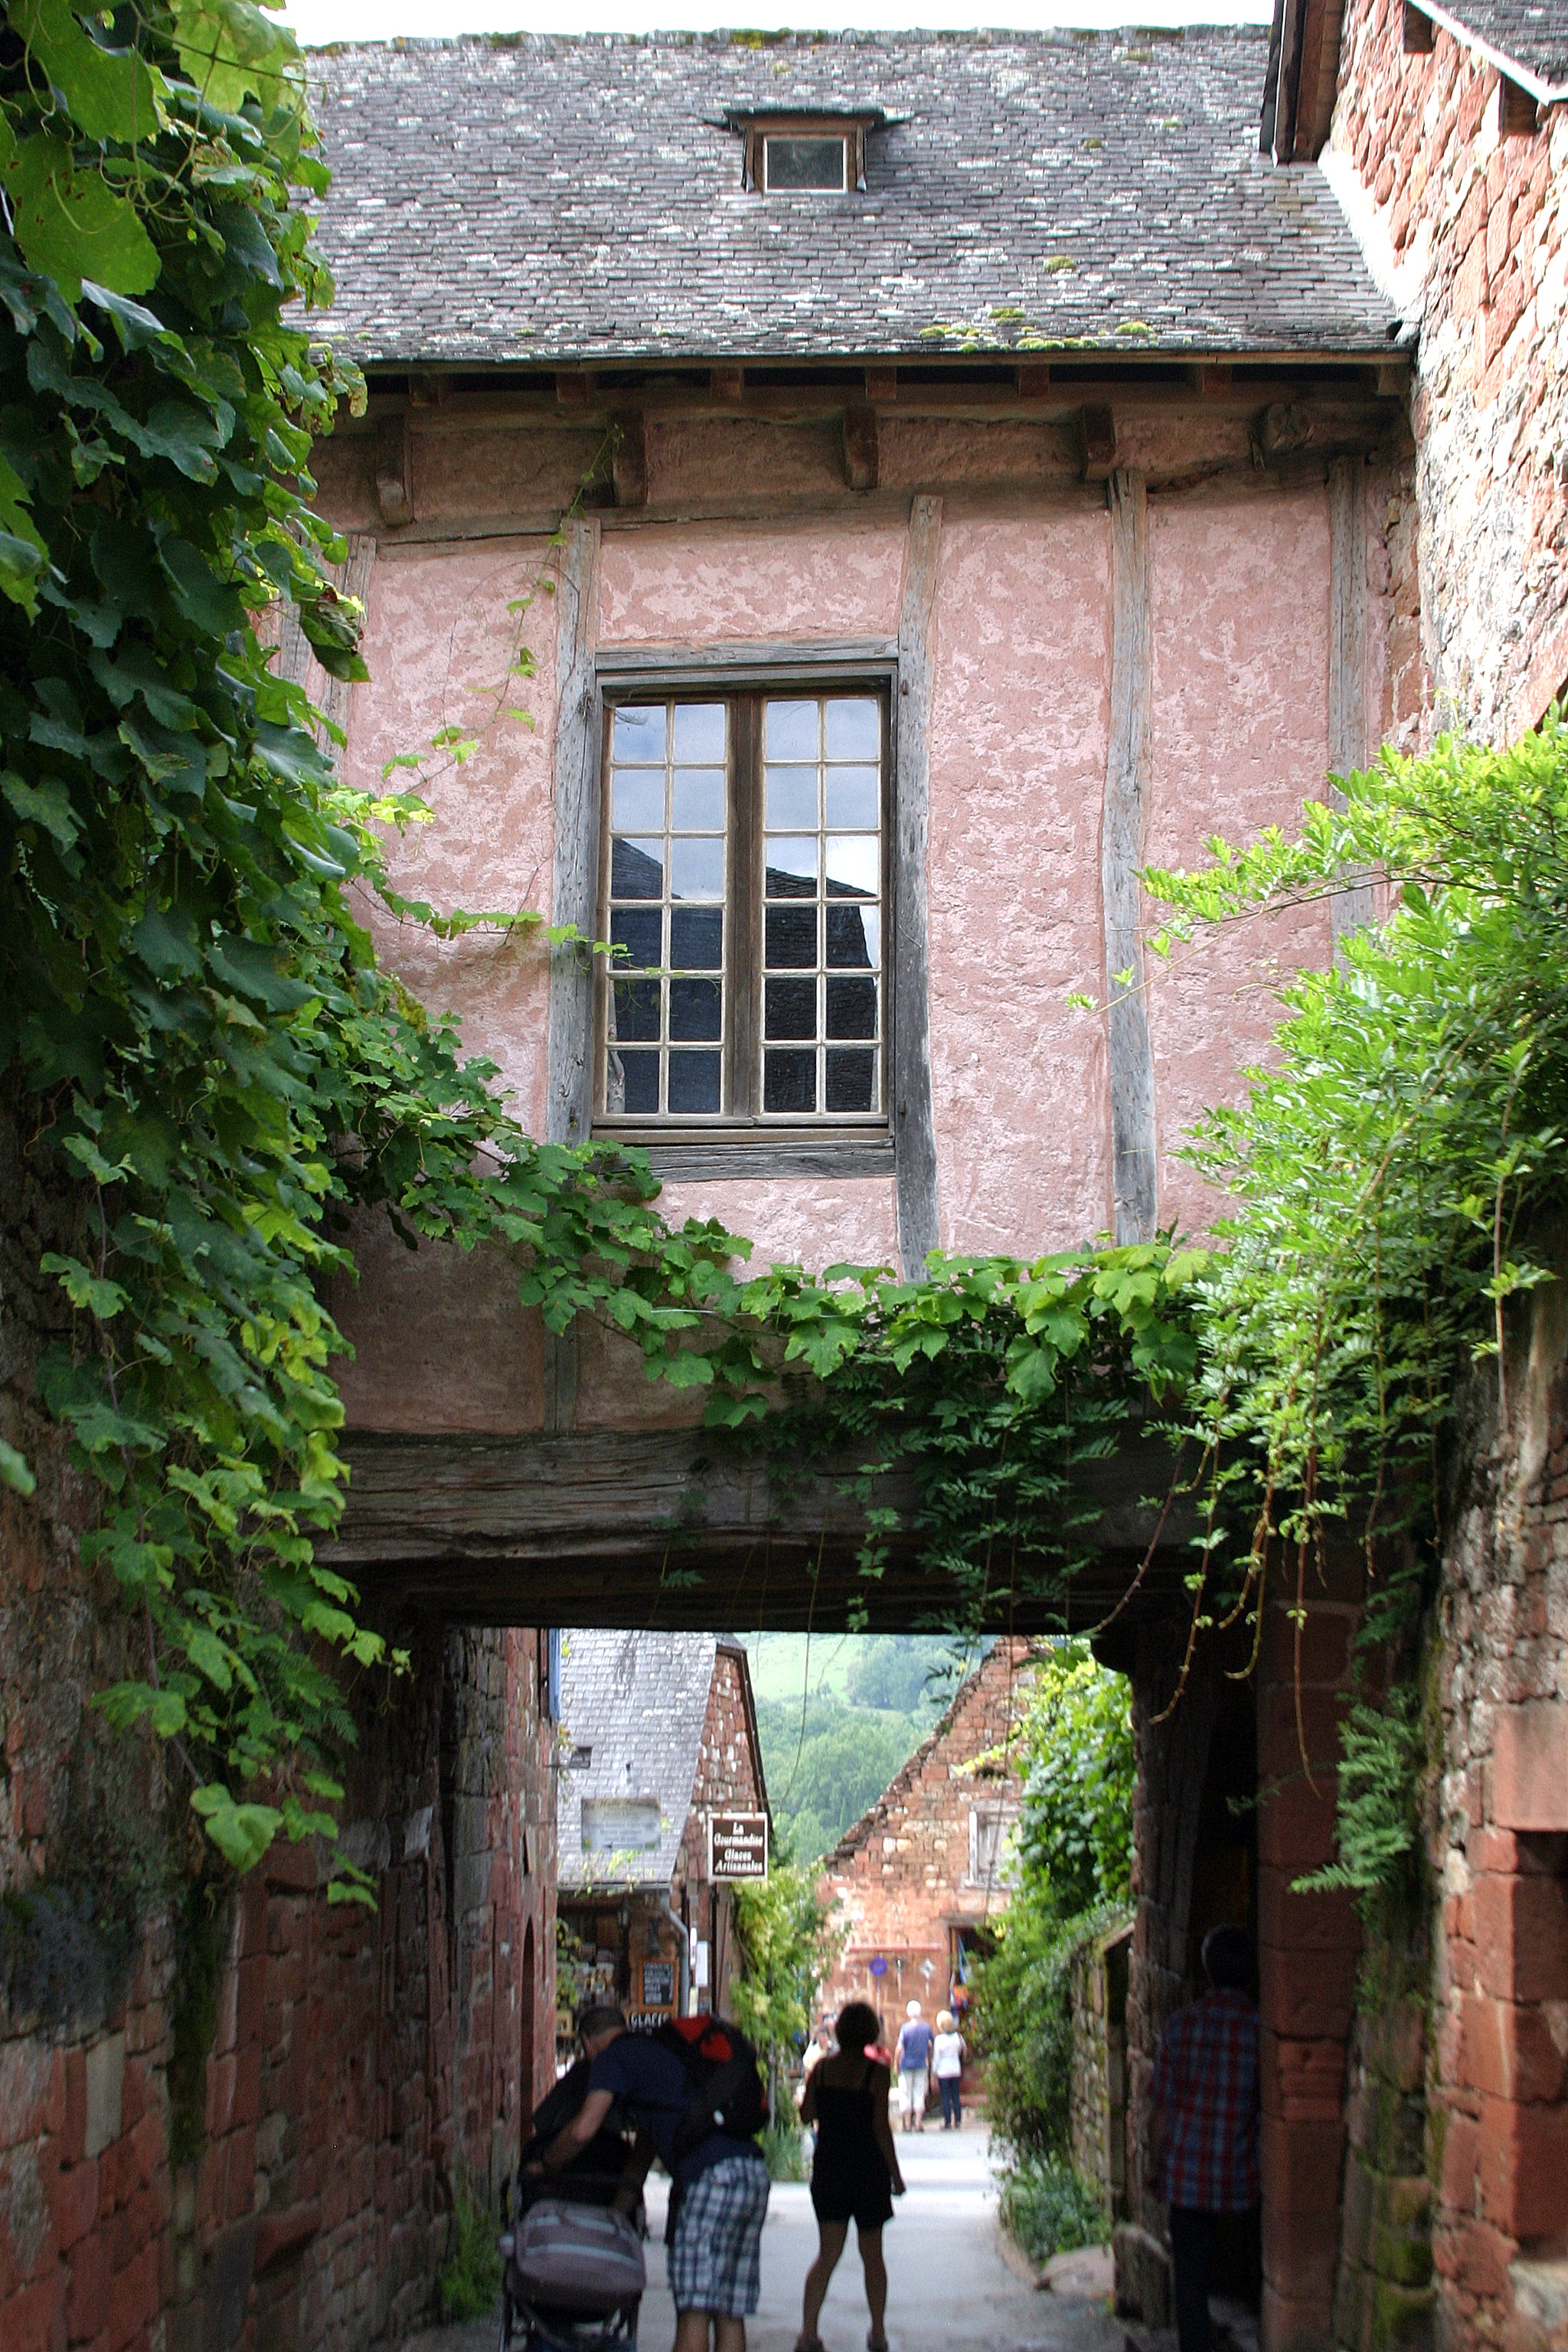 Collonges-la-Rouge, France - Street view